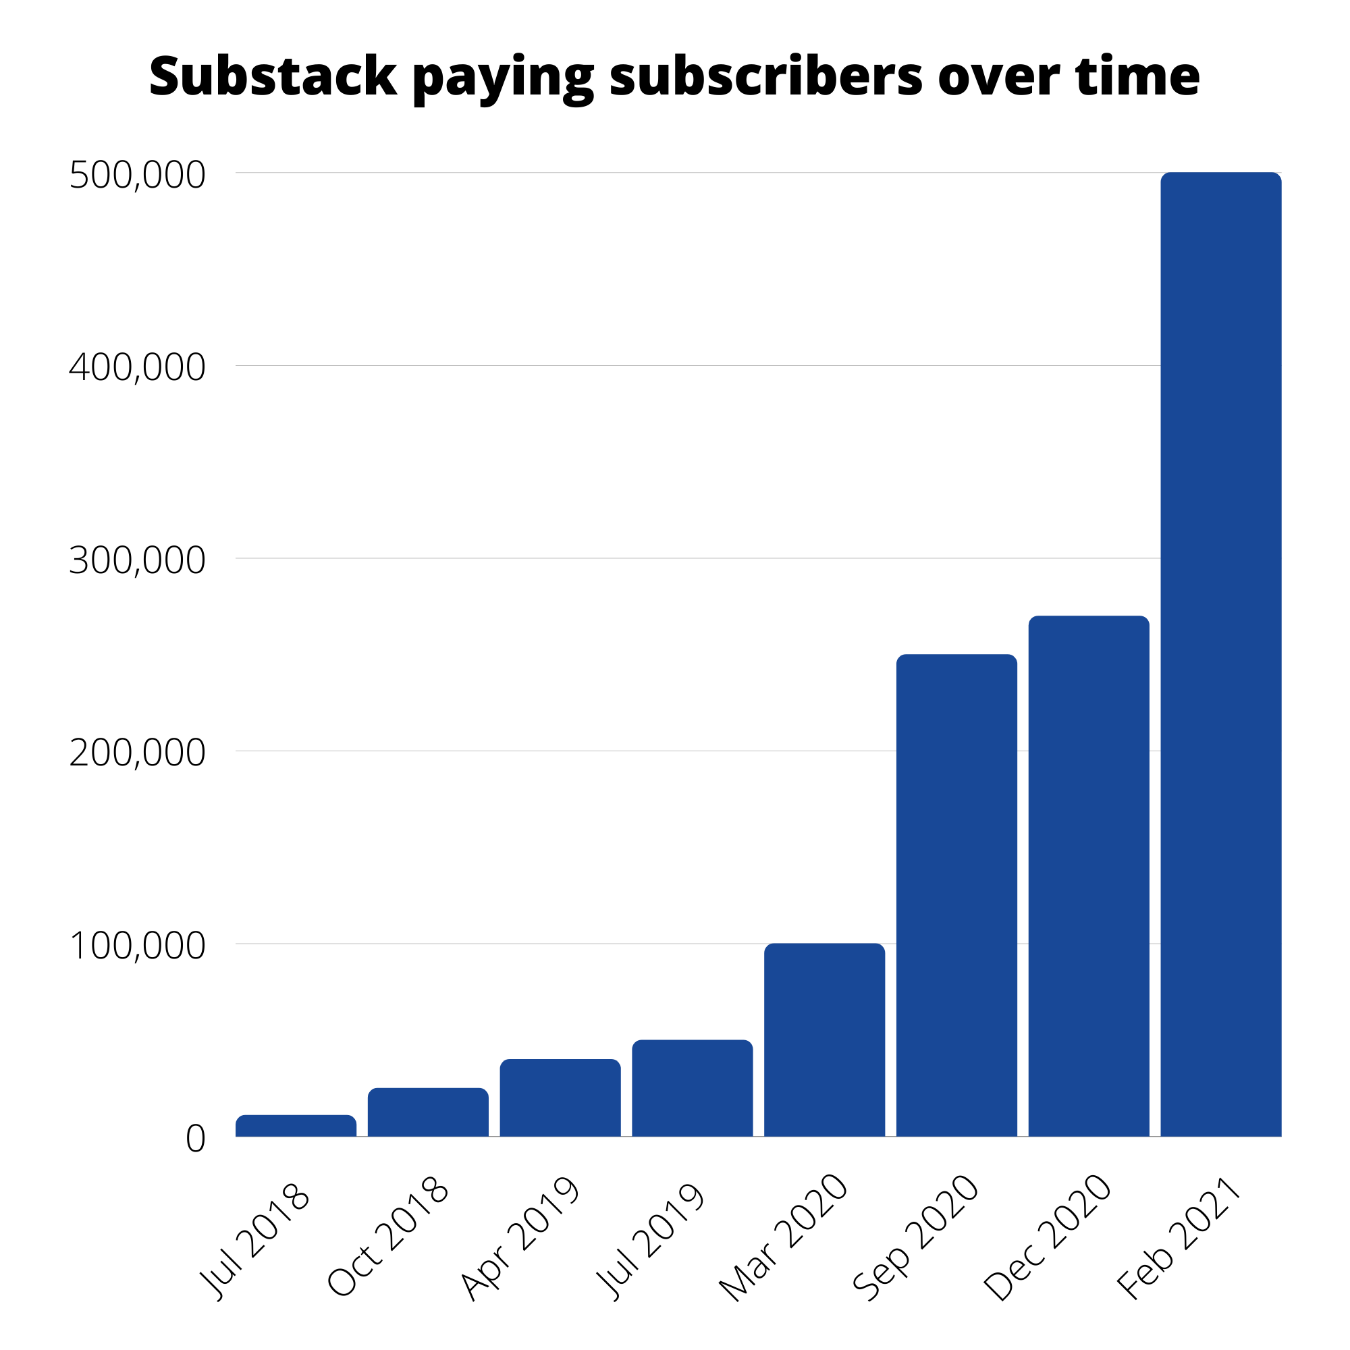 Substack paying subscribers over time.